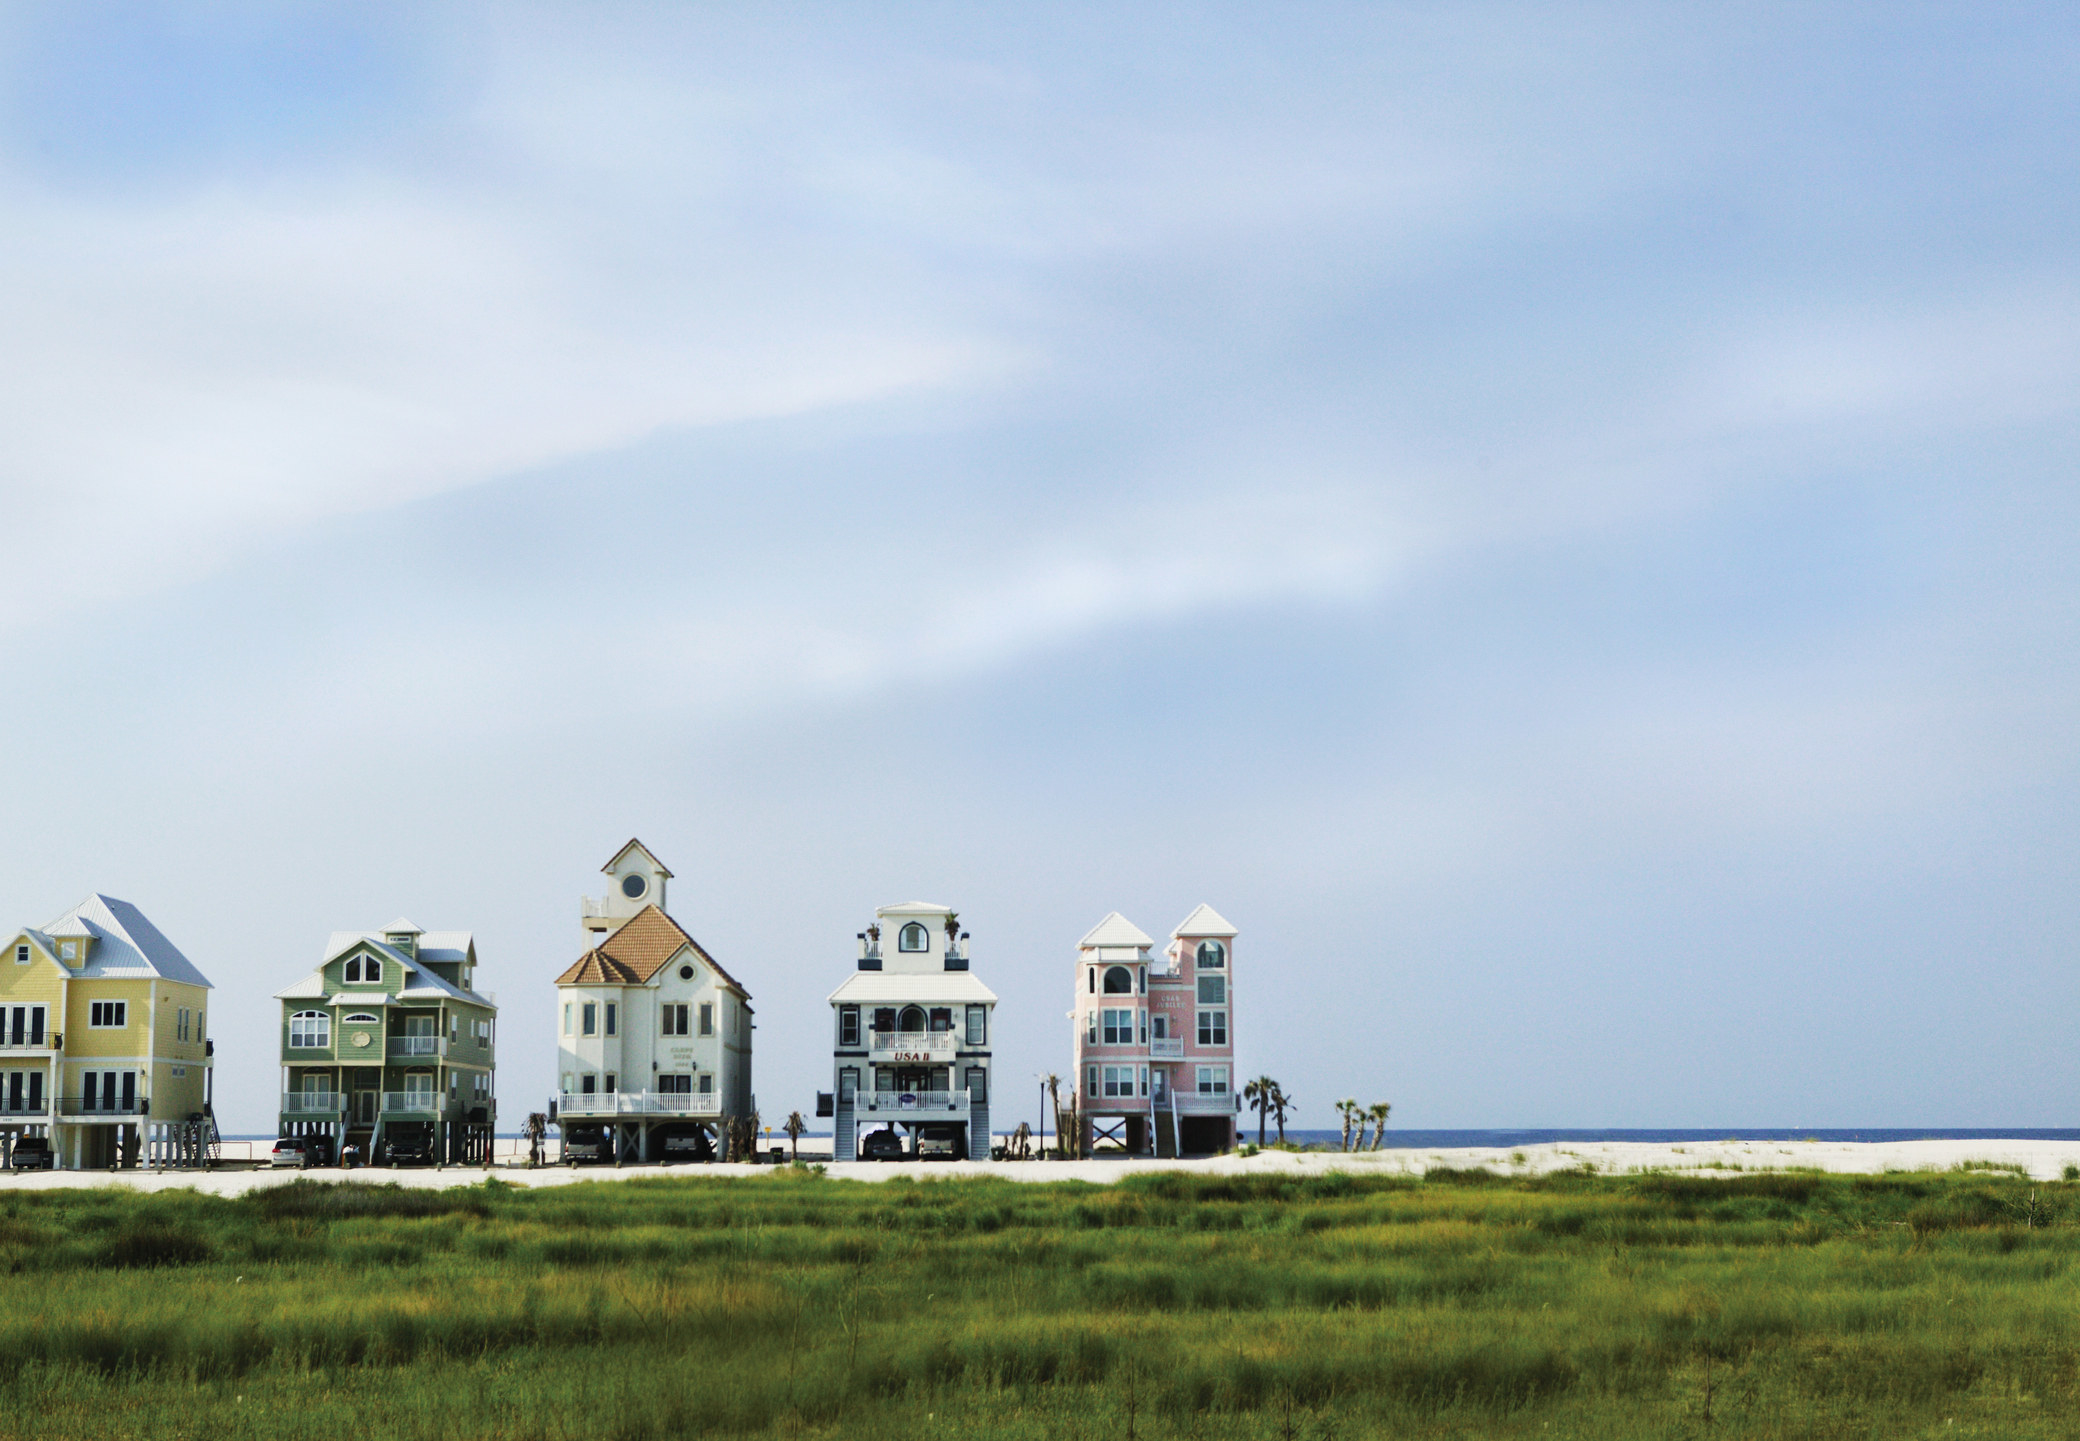 Houses on Alabama's Gulf Shores.